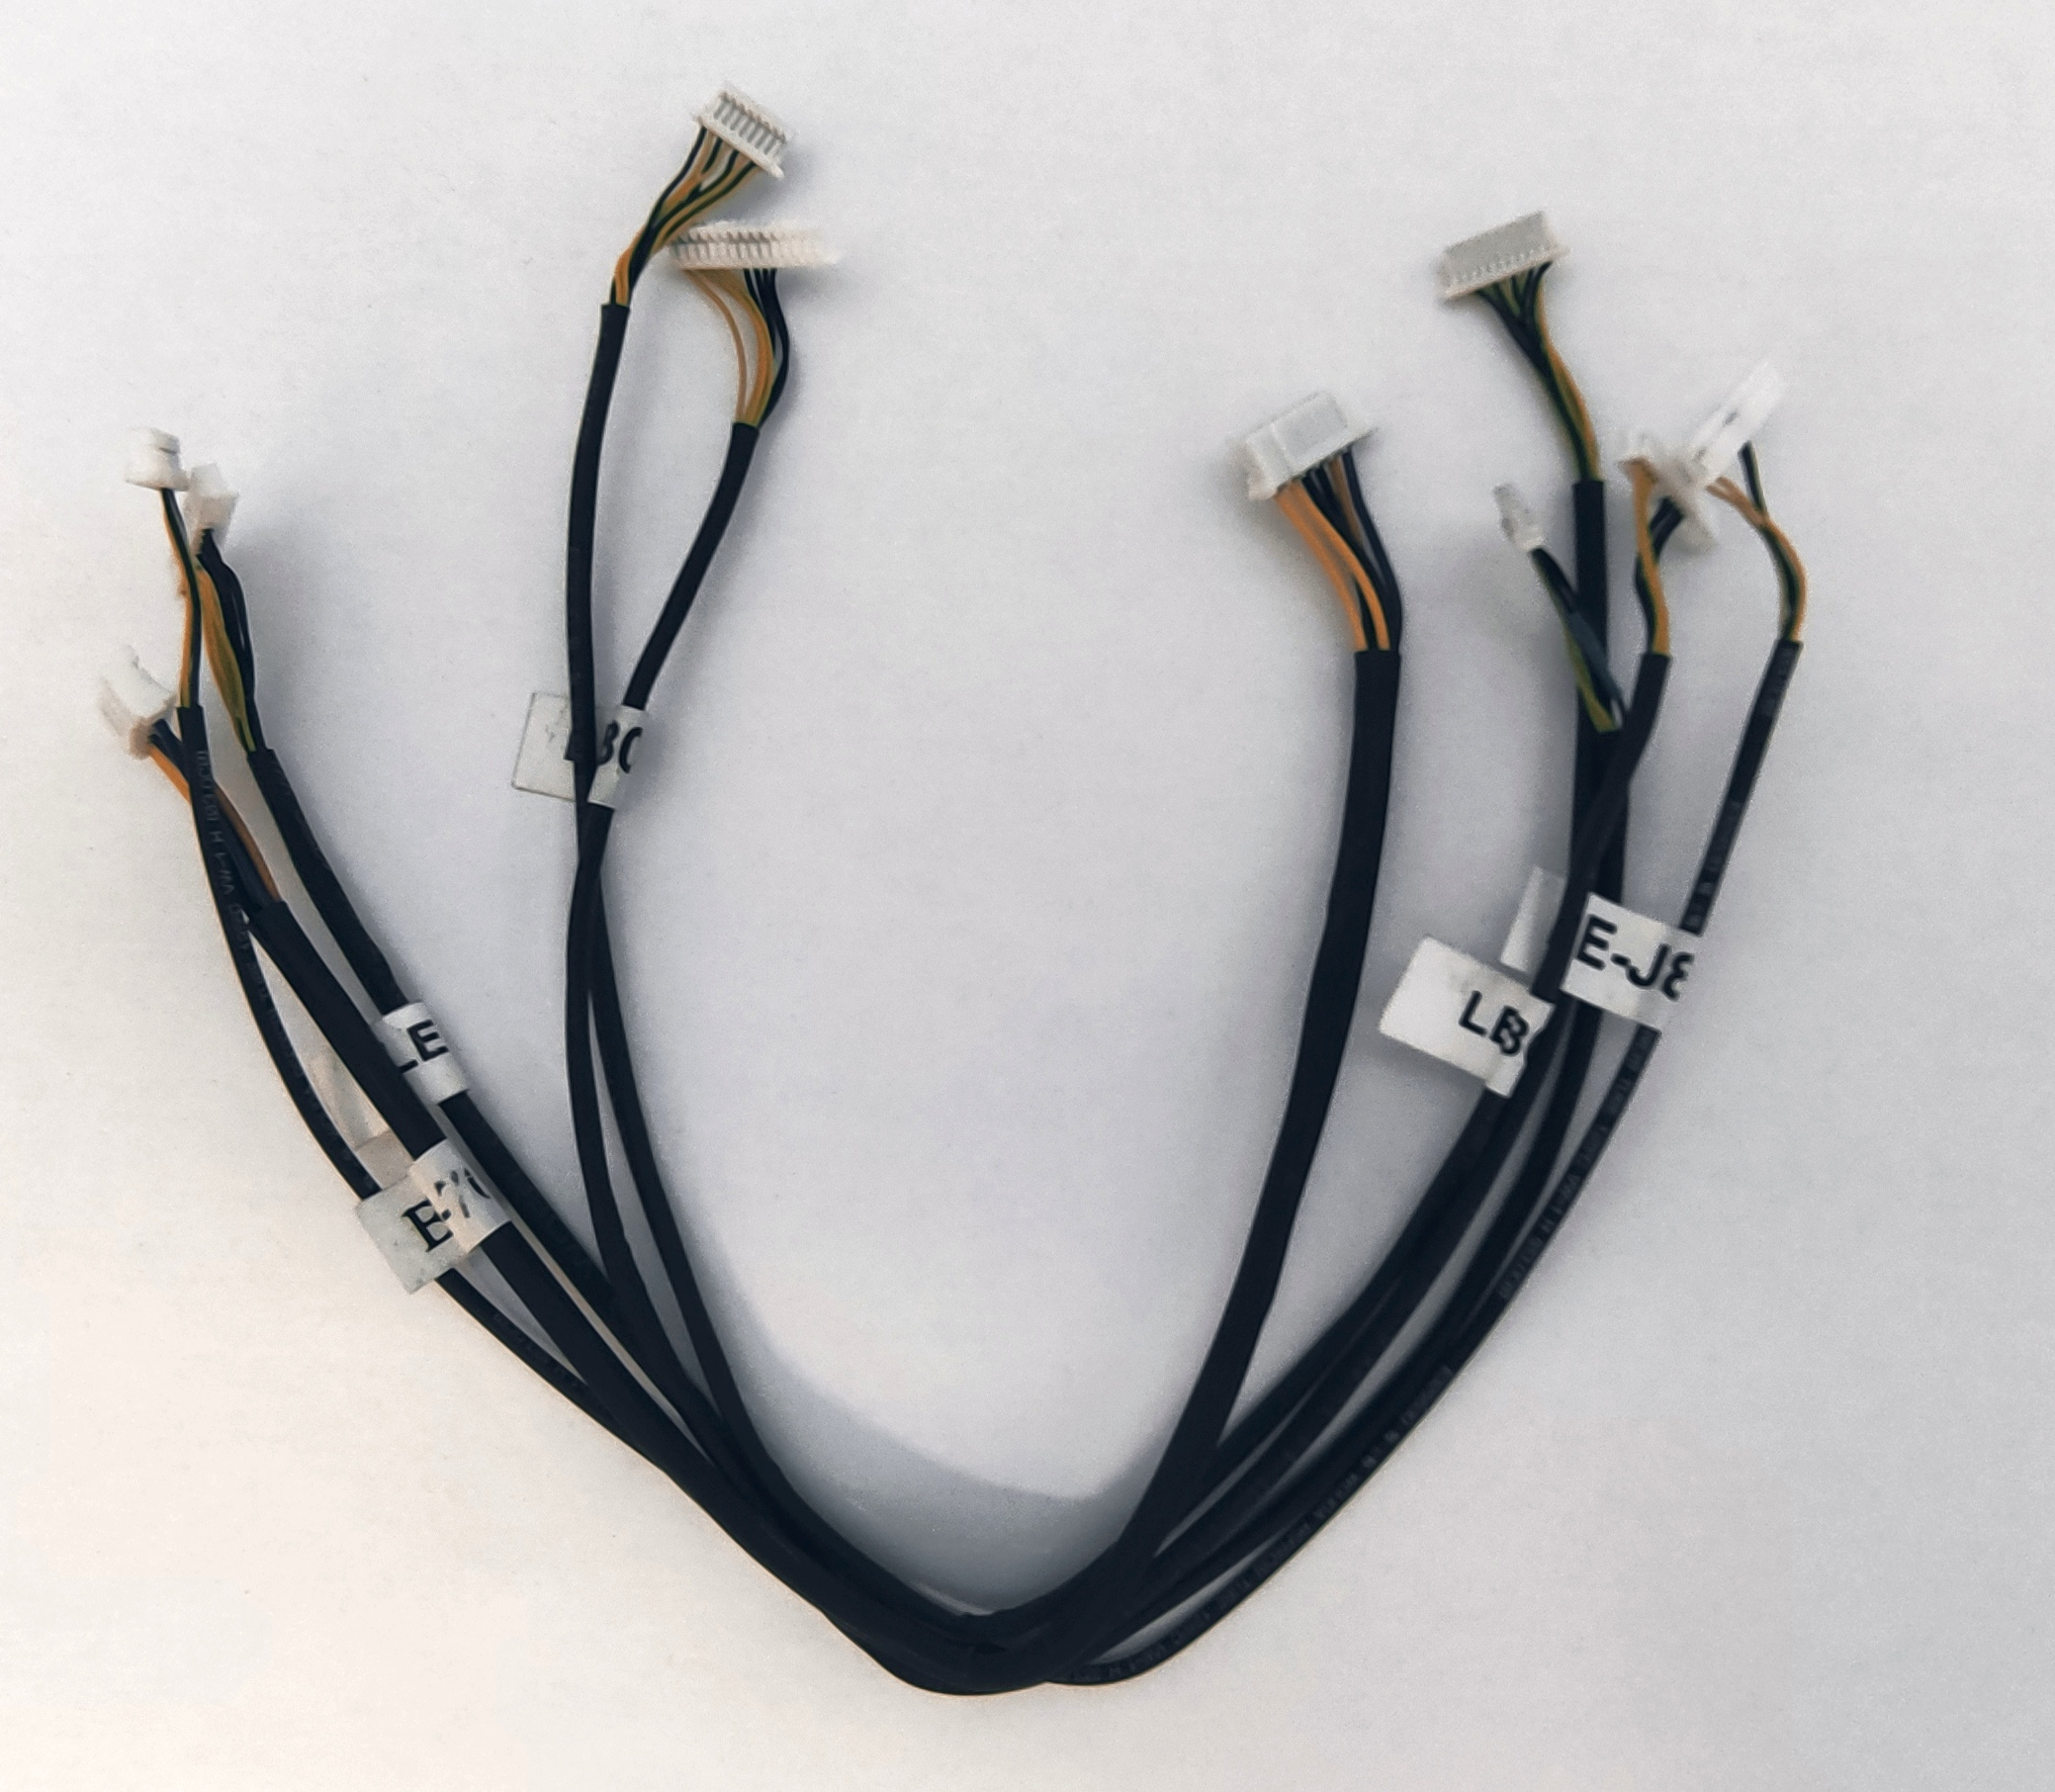 BT-cable-70661